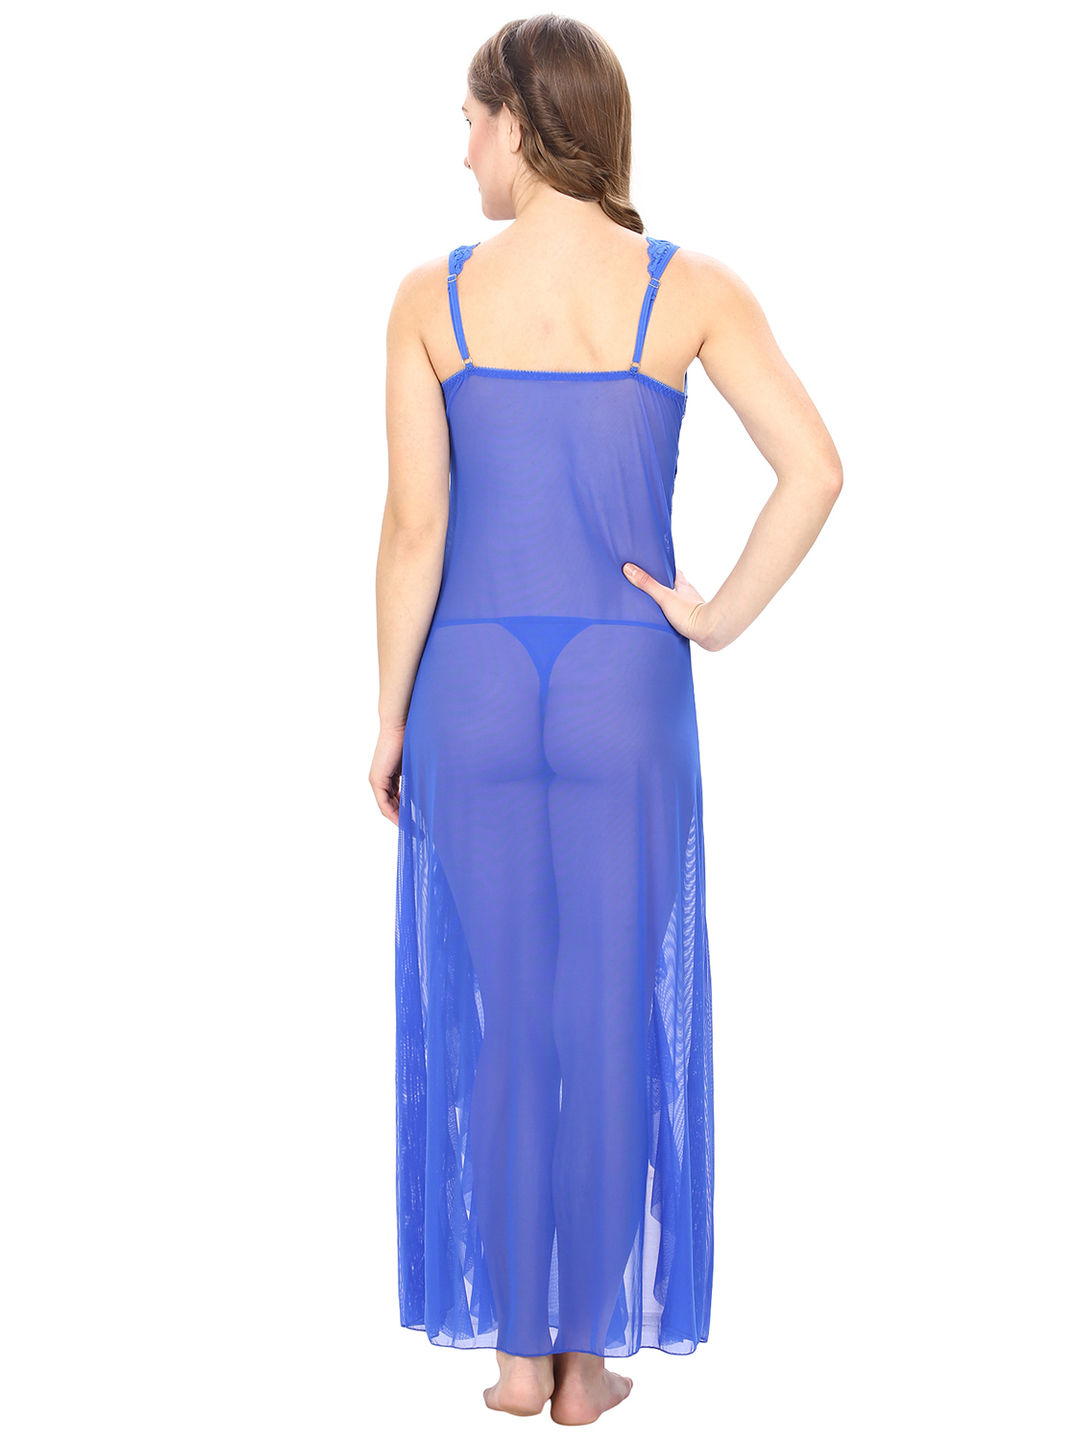 Mesh and Lace Blue Sheer Night Dress with G-String 32b675f65